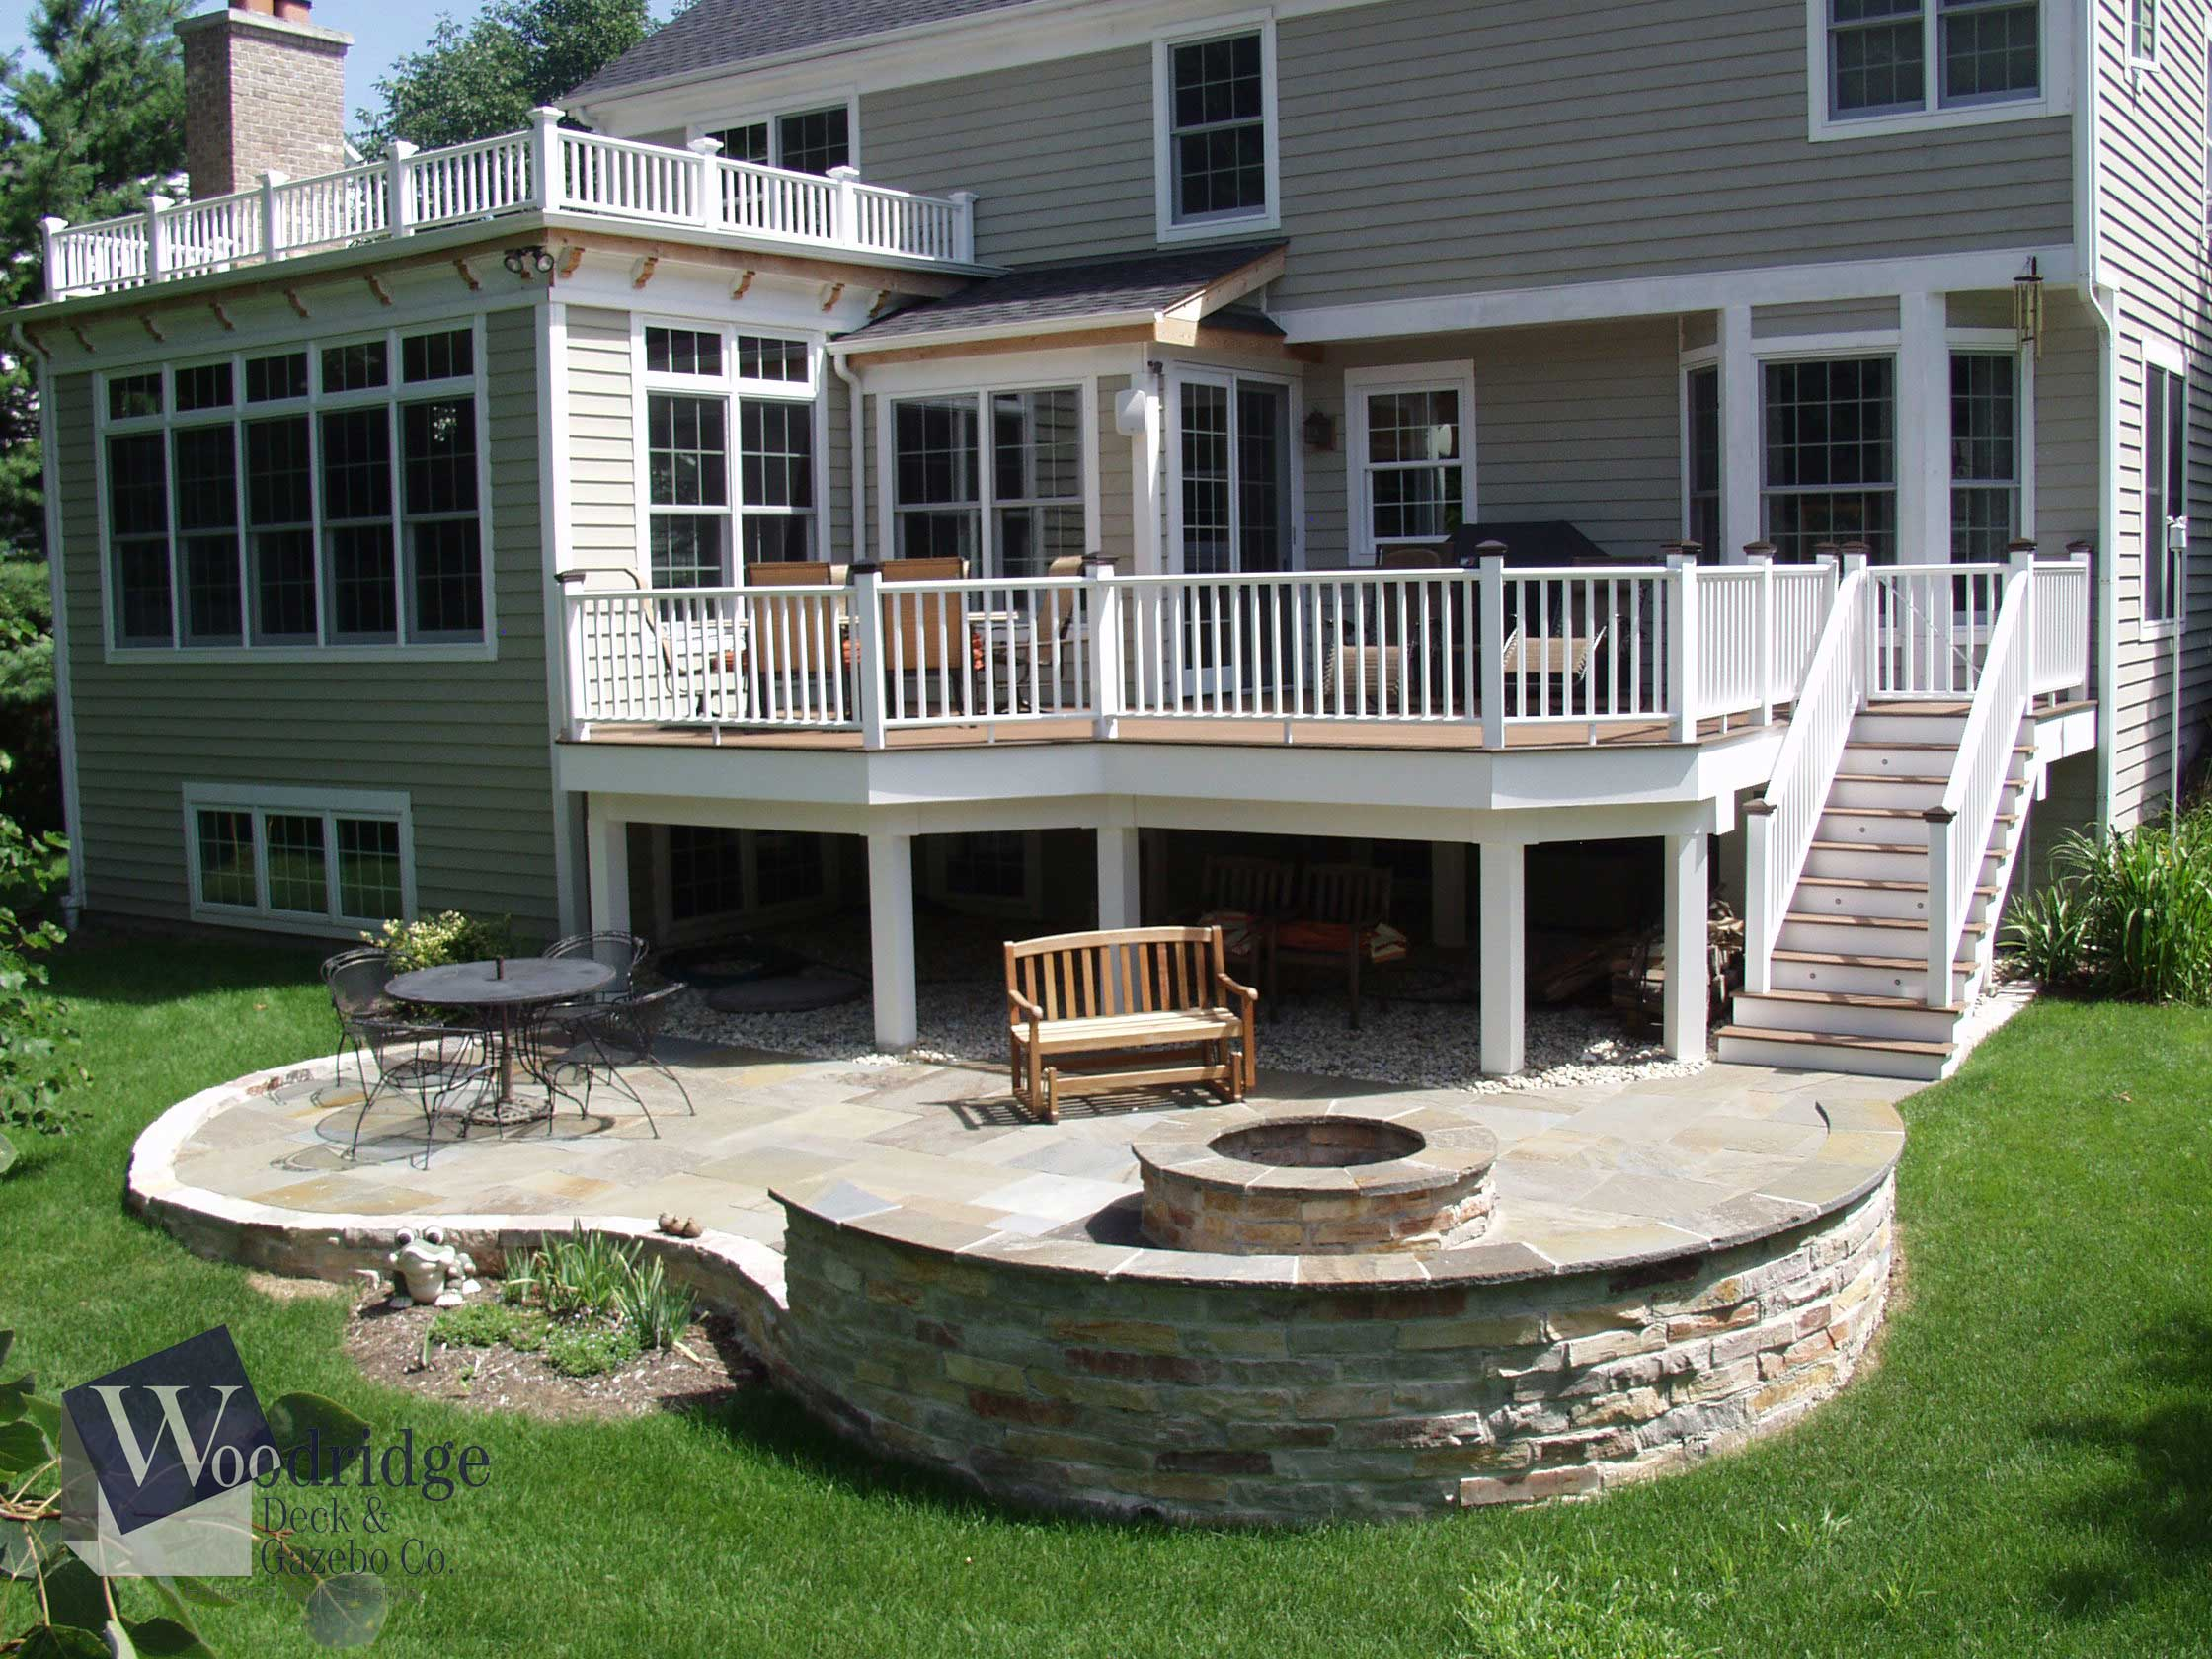 AA-01 PVC Deck Woodridge Deck & Gazebo Co.